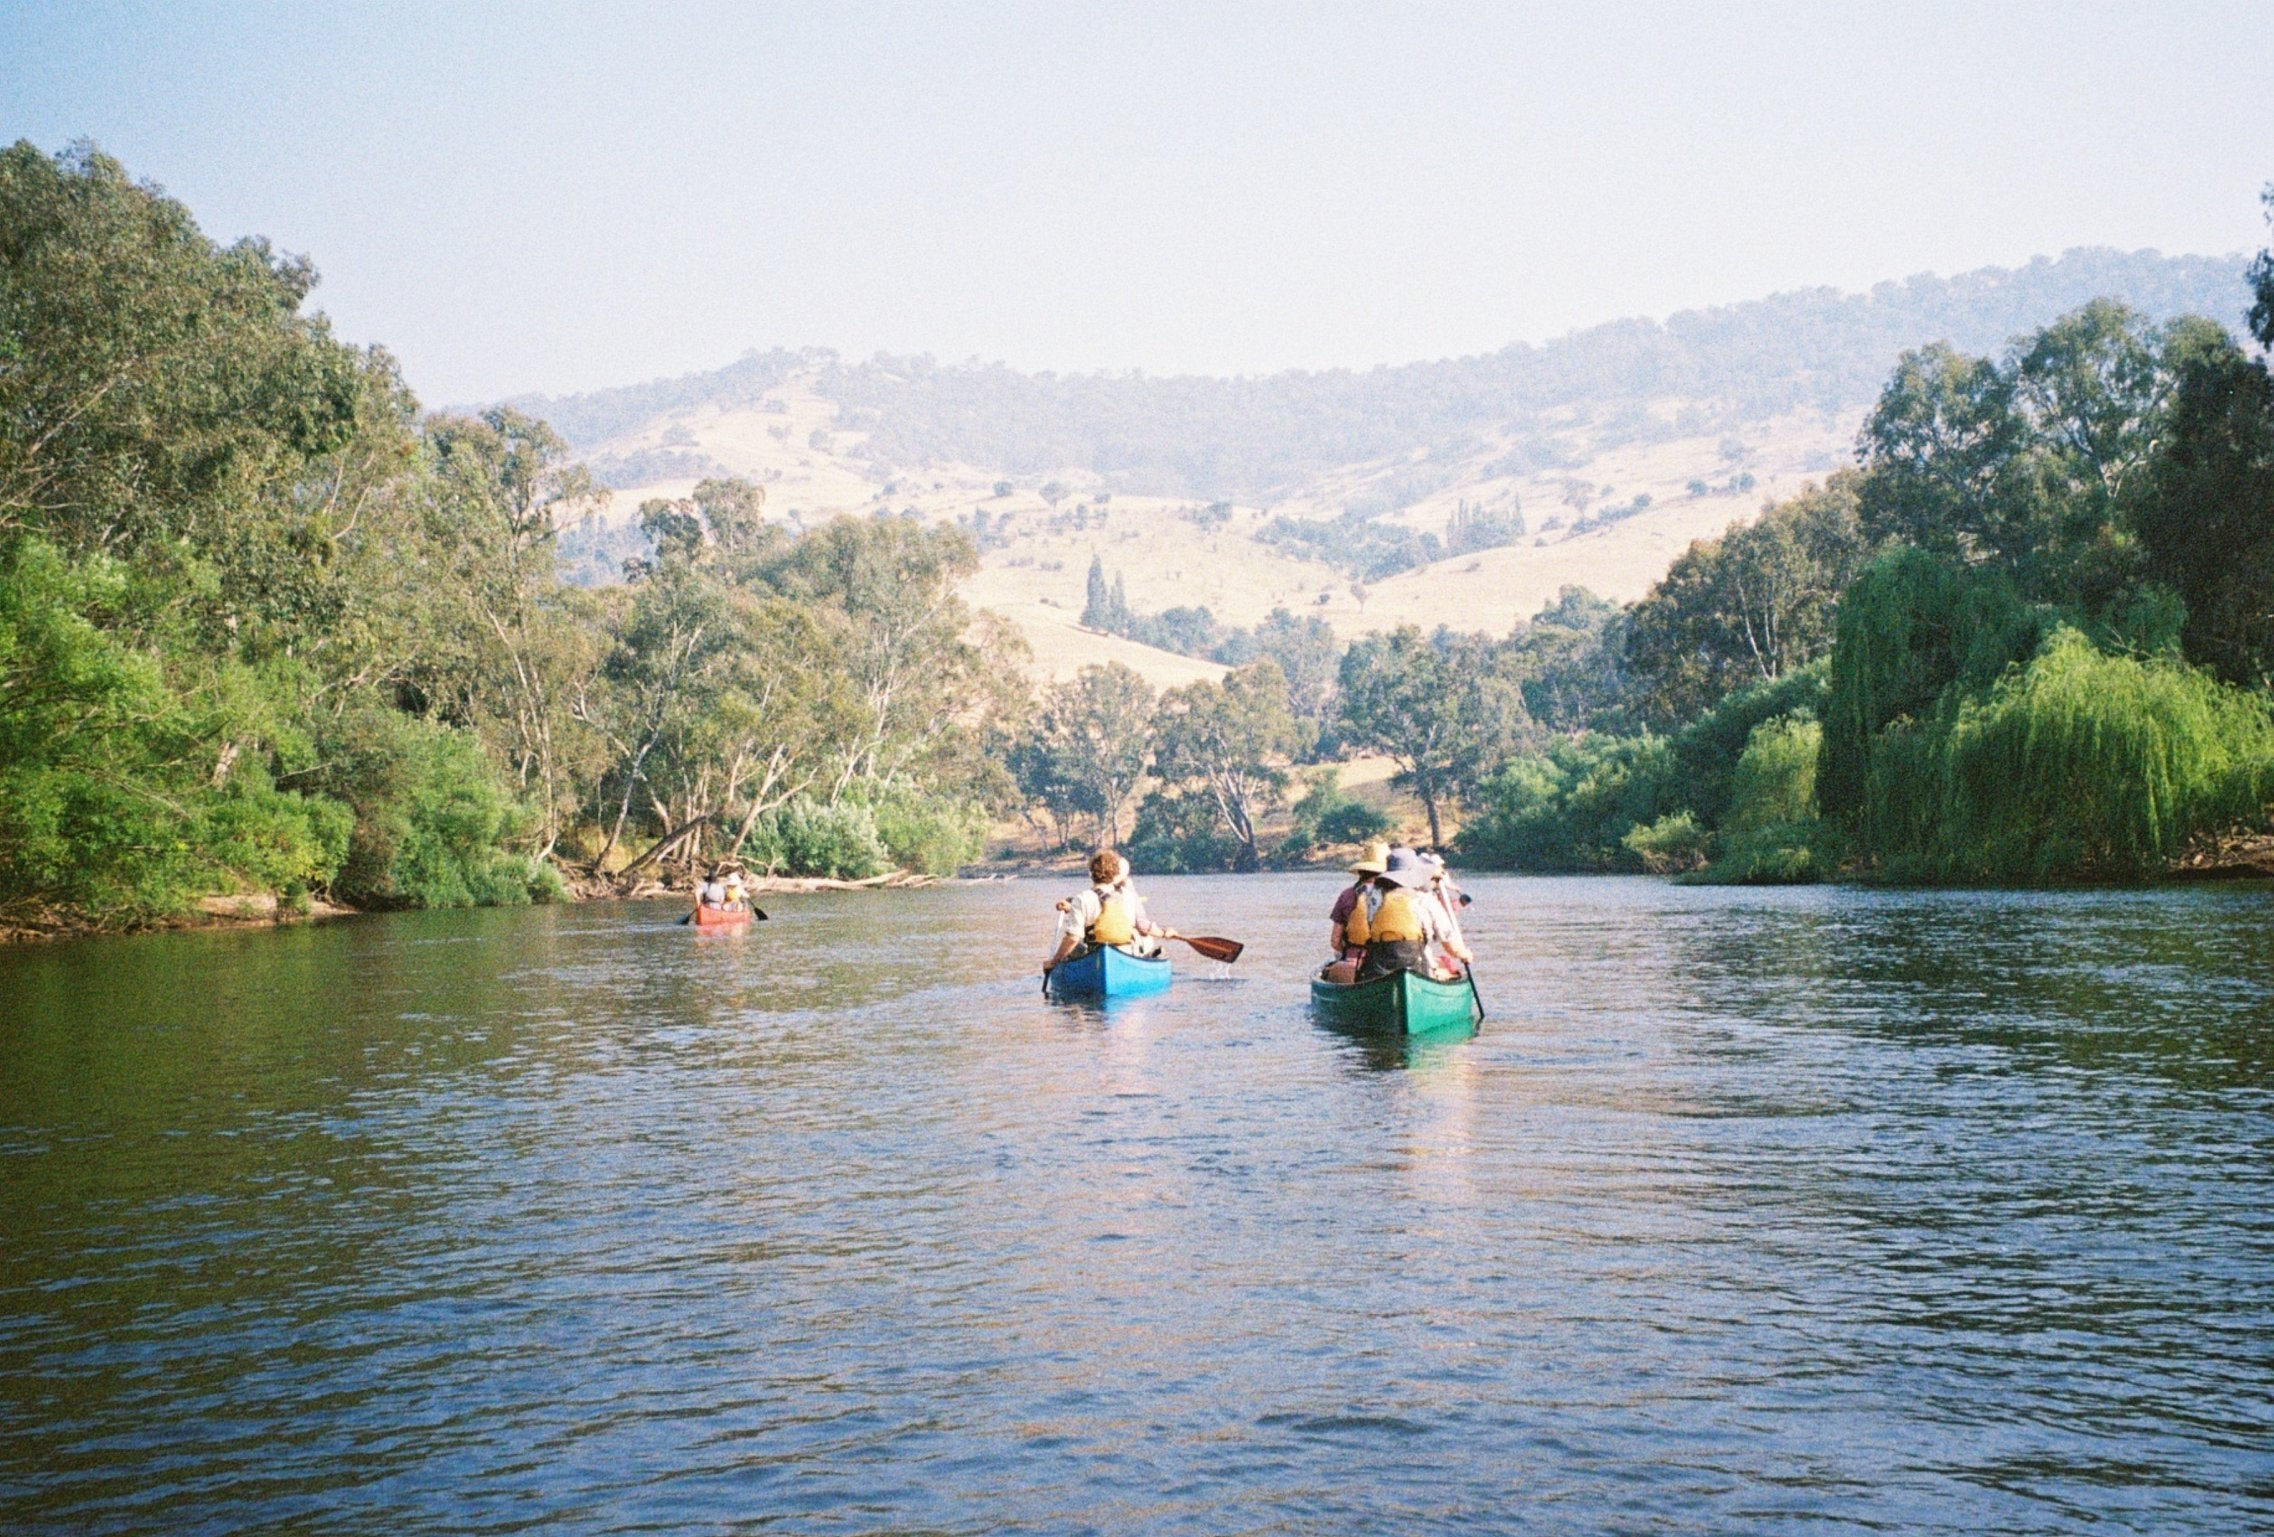 Canoers on the Murray River